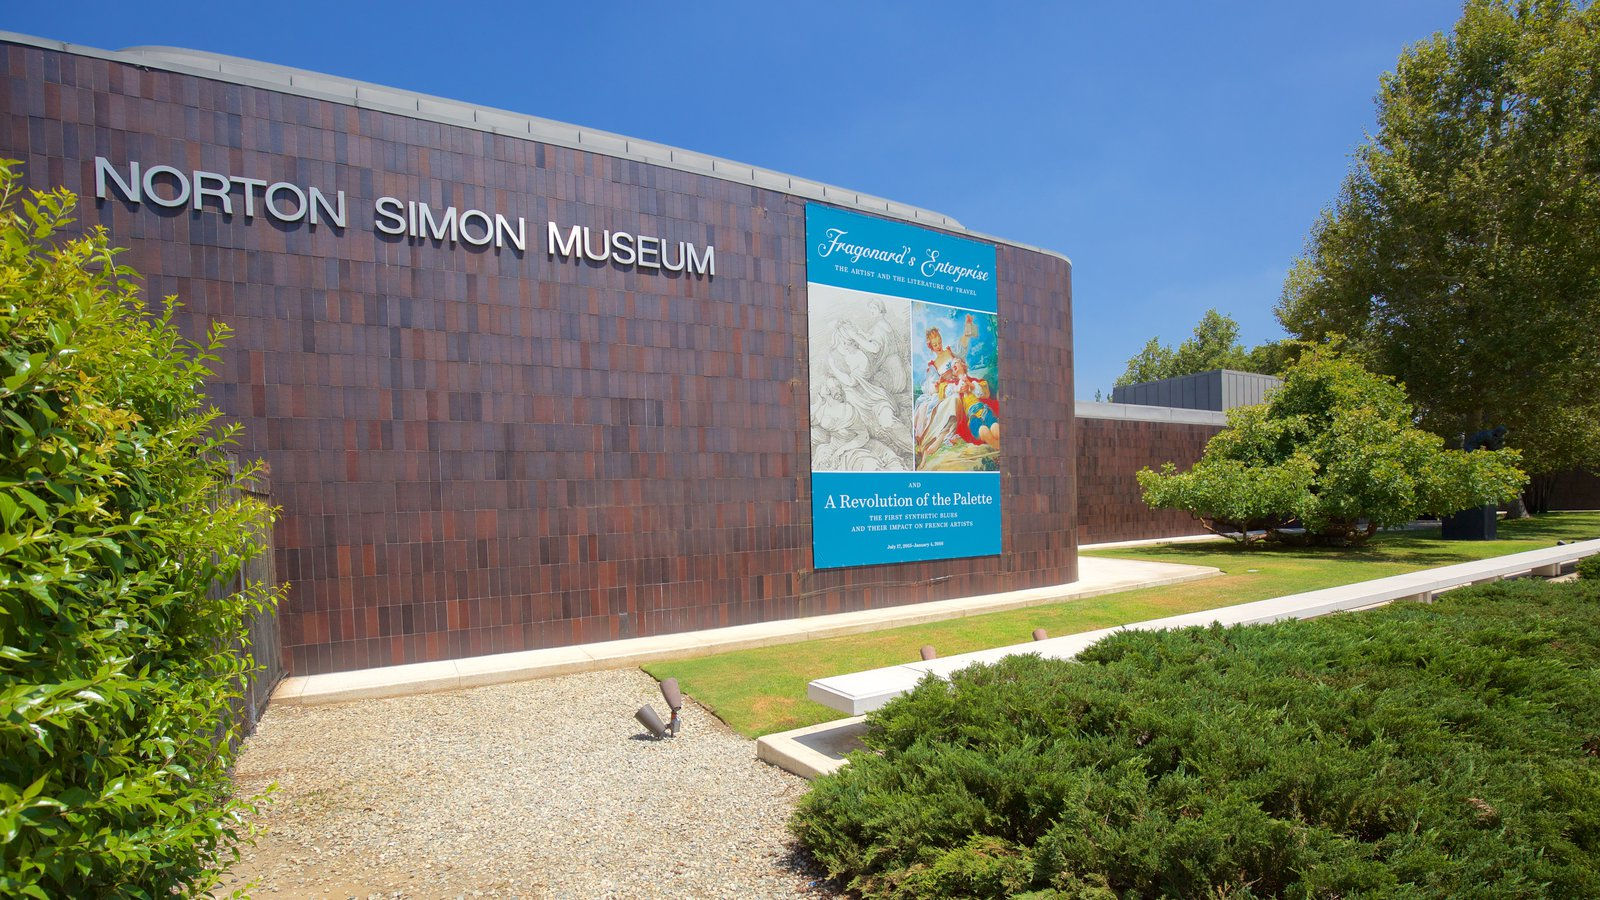 Things to do in Pasadena - Norton Simon Museum